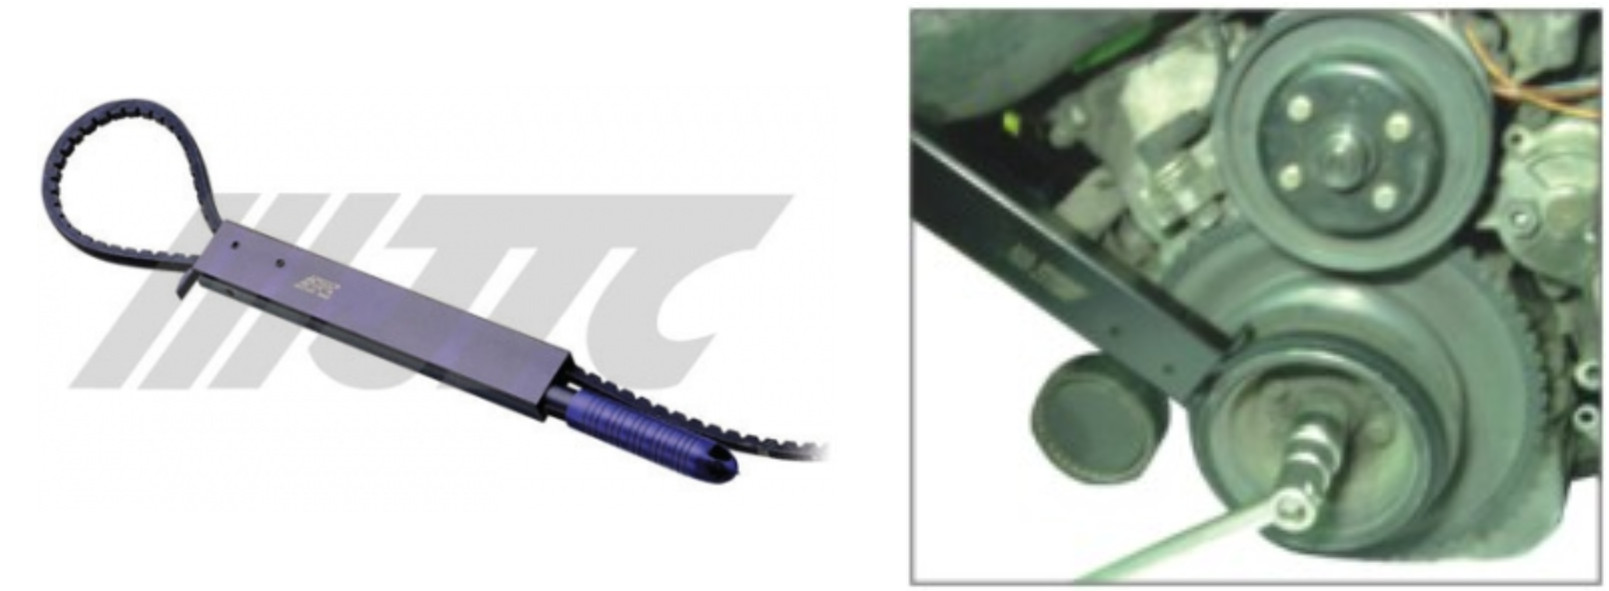 Dụng cụ giữ puly JTC 1901